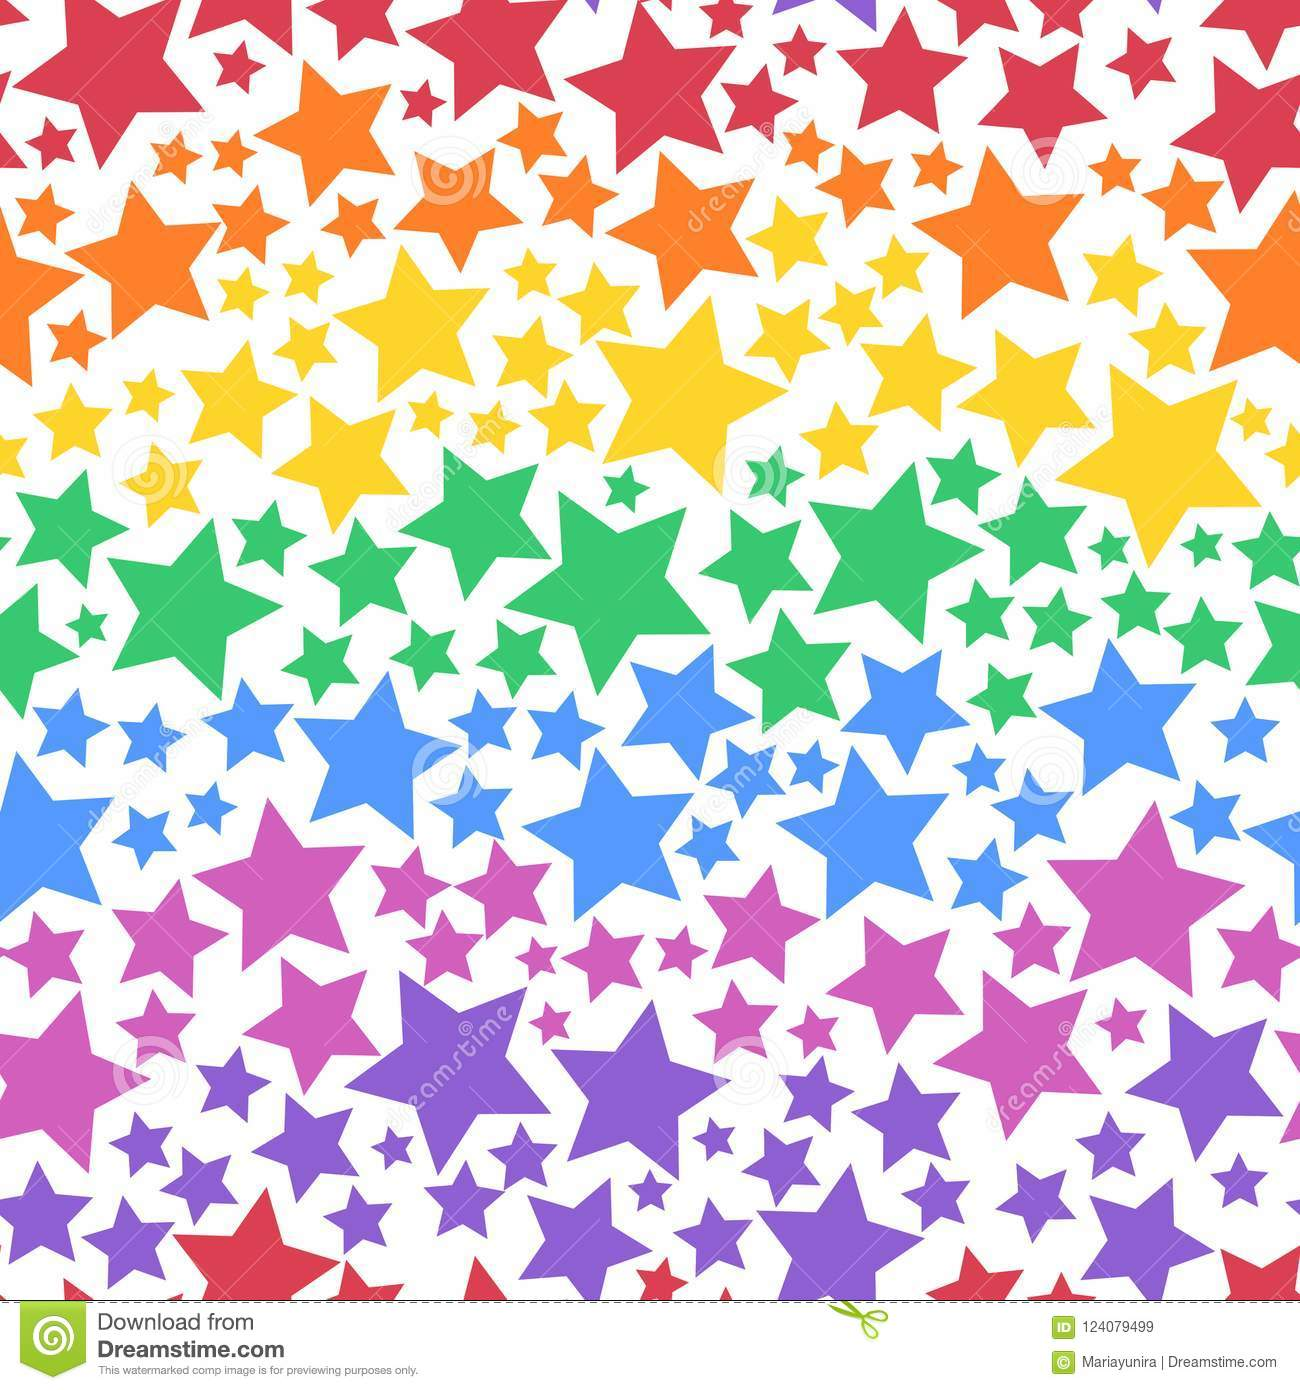 Colorful transparent star background for party wallpaper and accessories. PNG additional file.